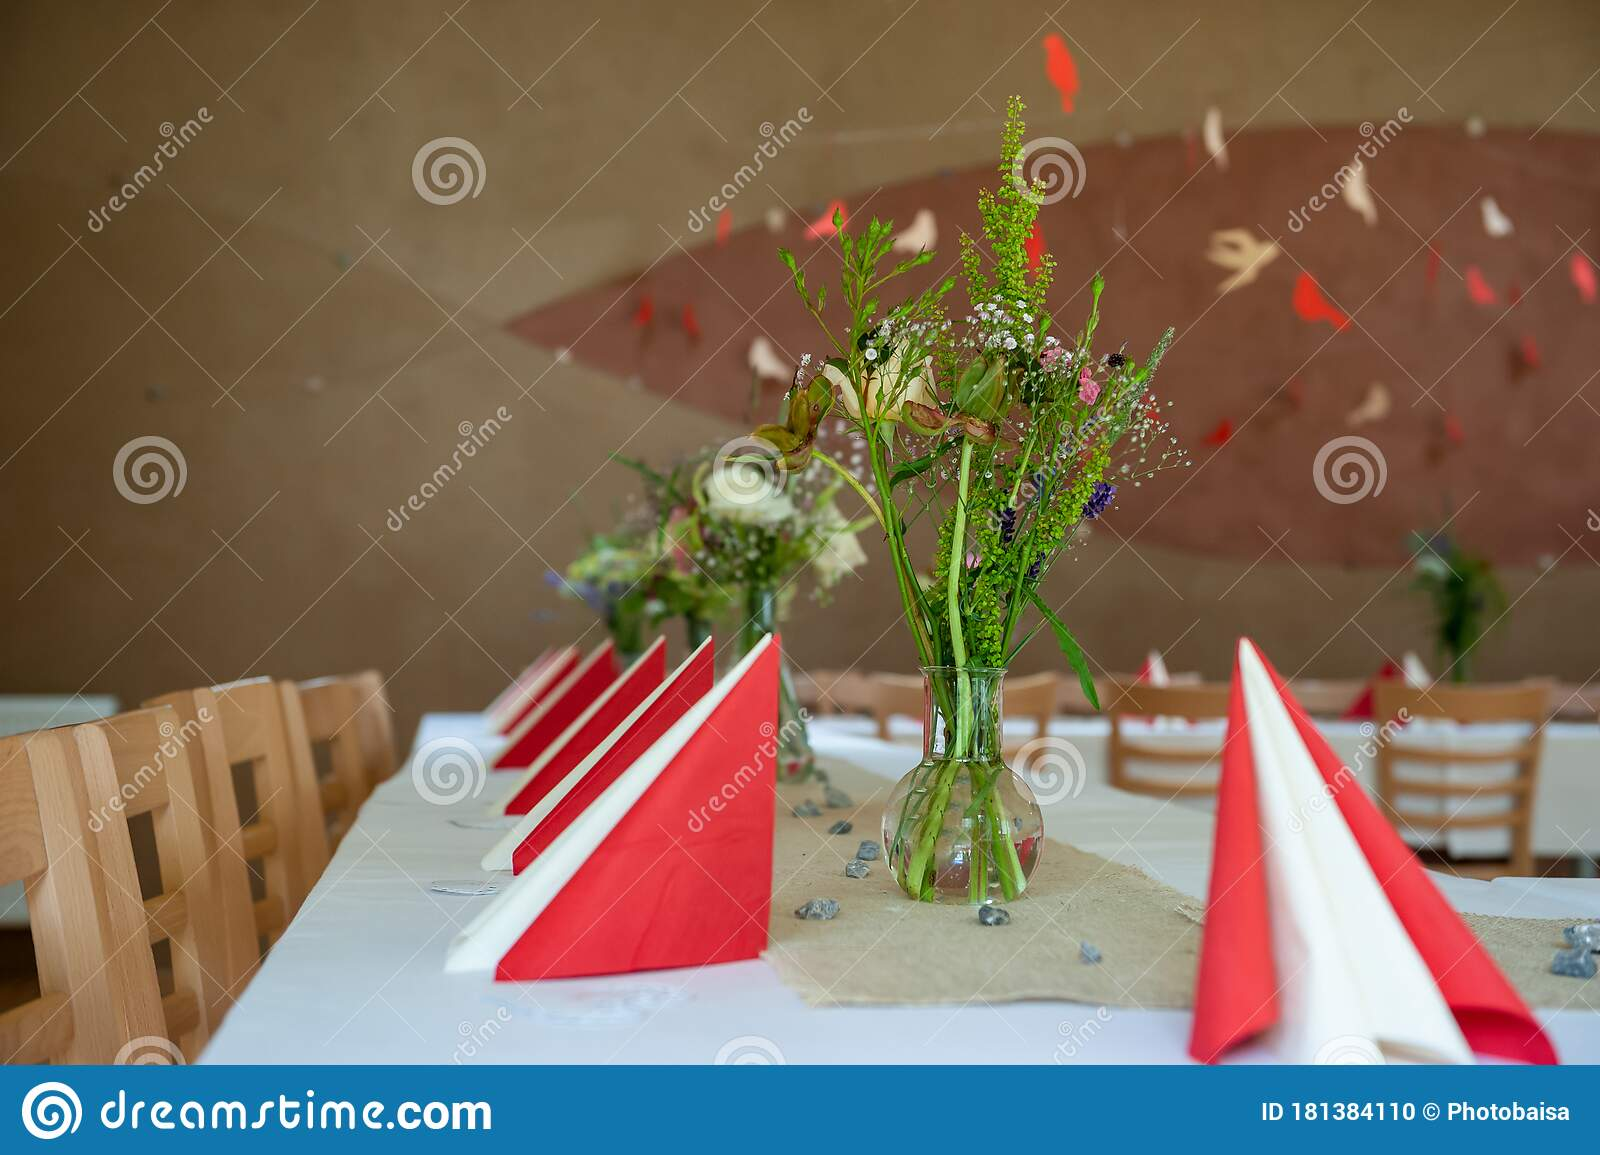 Red And White Indoor Catering Dinner At Summer Wedding With Homemade Meadow Flower Decoration White Wedding Table Decoration With Stock Photo Image Of Celebration Flower 181384110